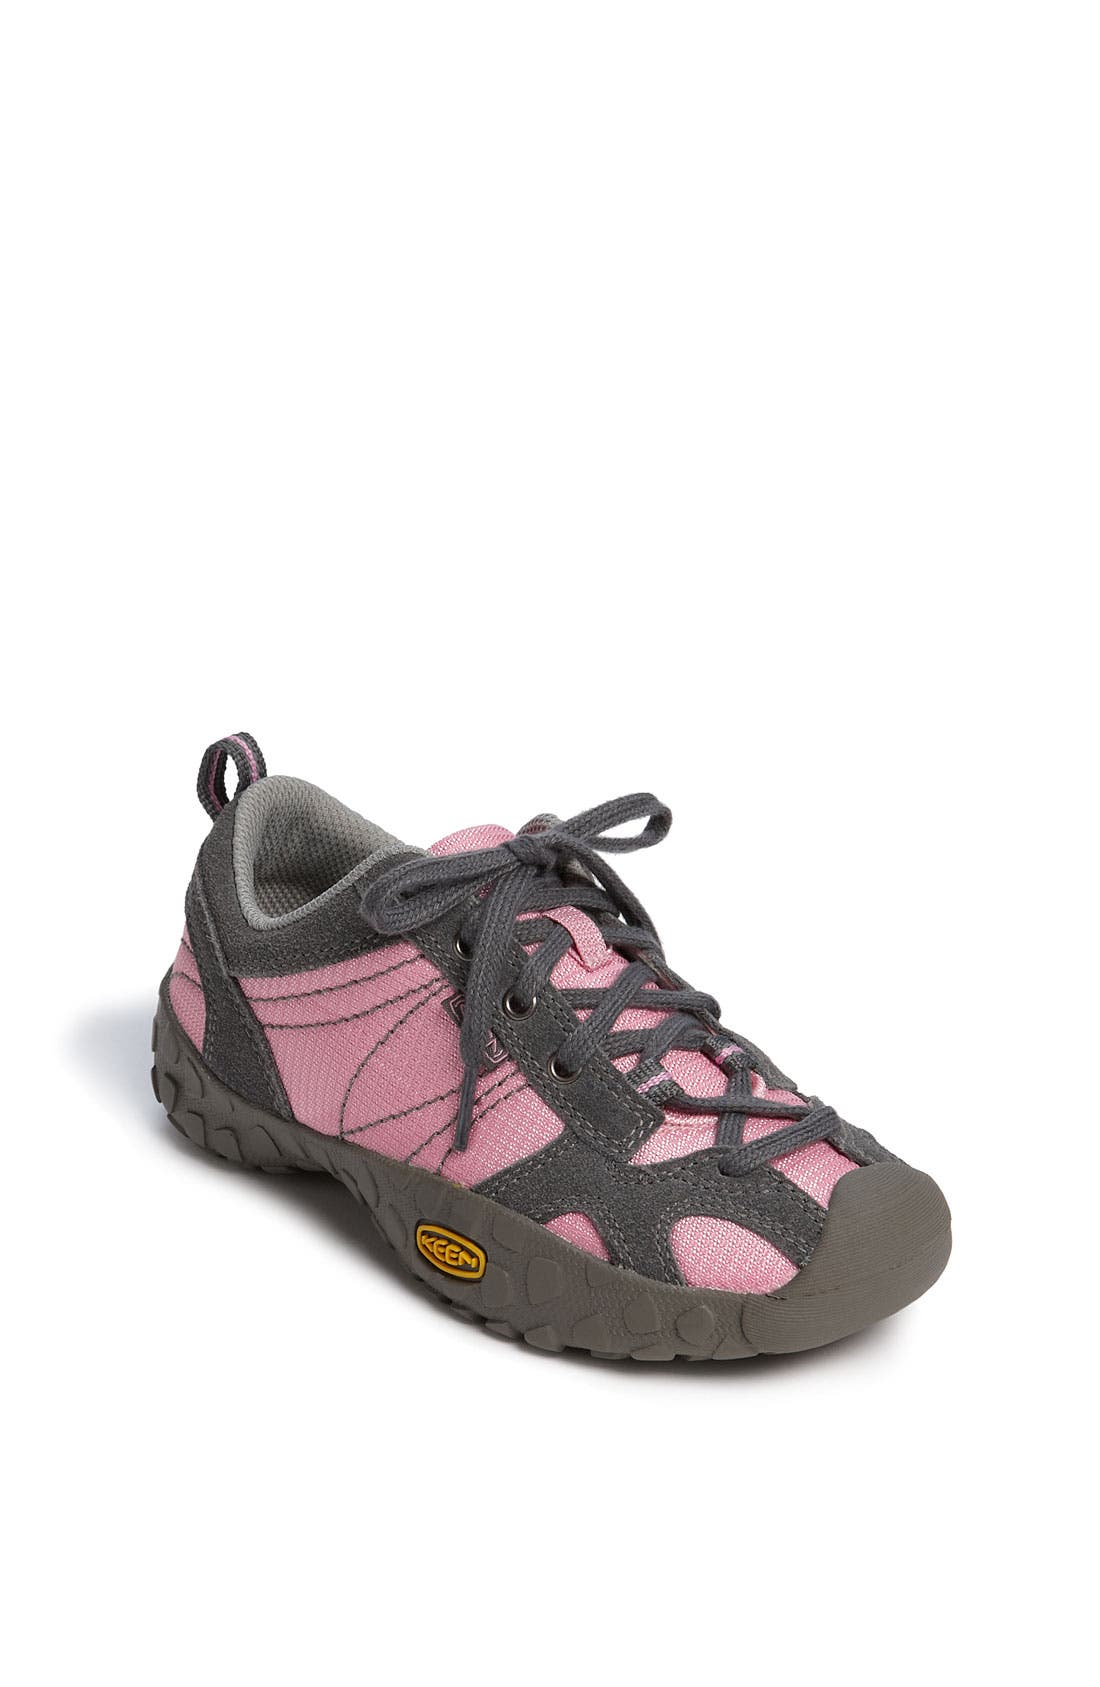 Main Image - Keen 'Ambler' Trail Shoe (Toddler, Little Kid & Big Kid)